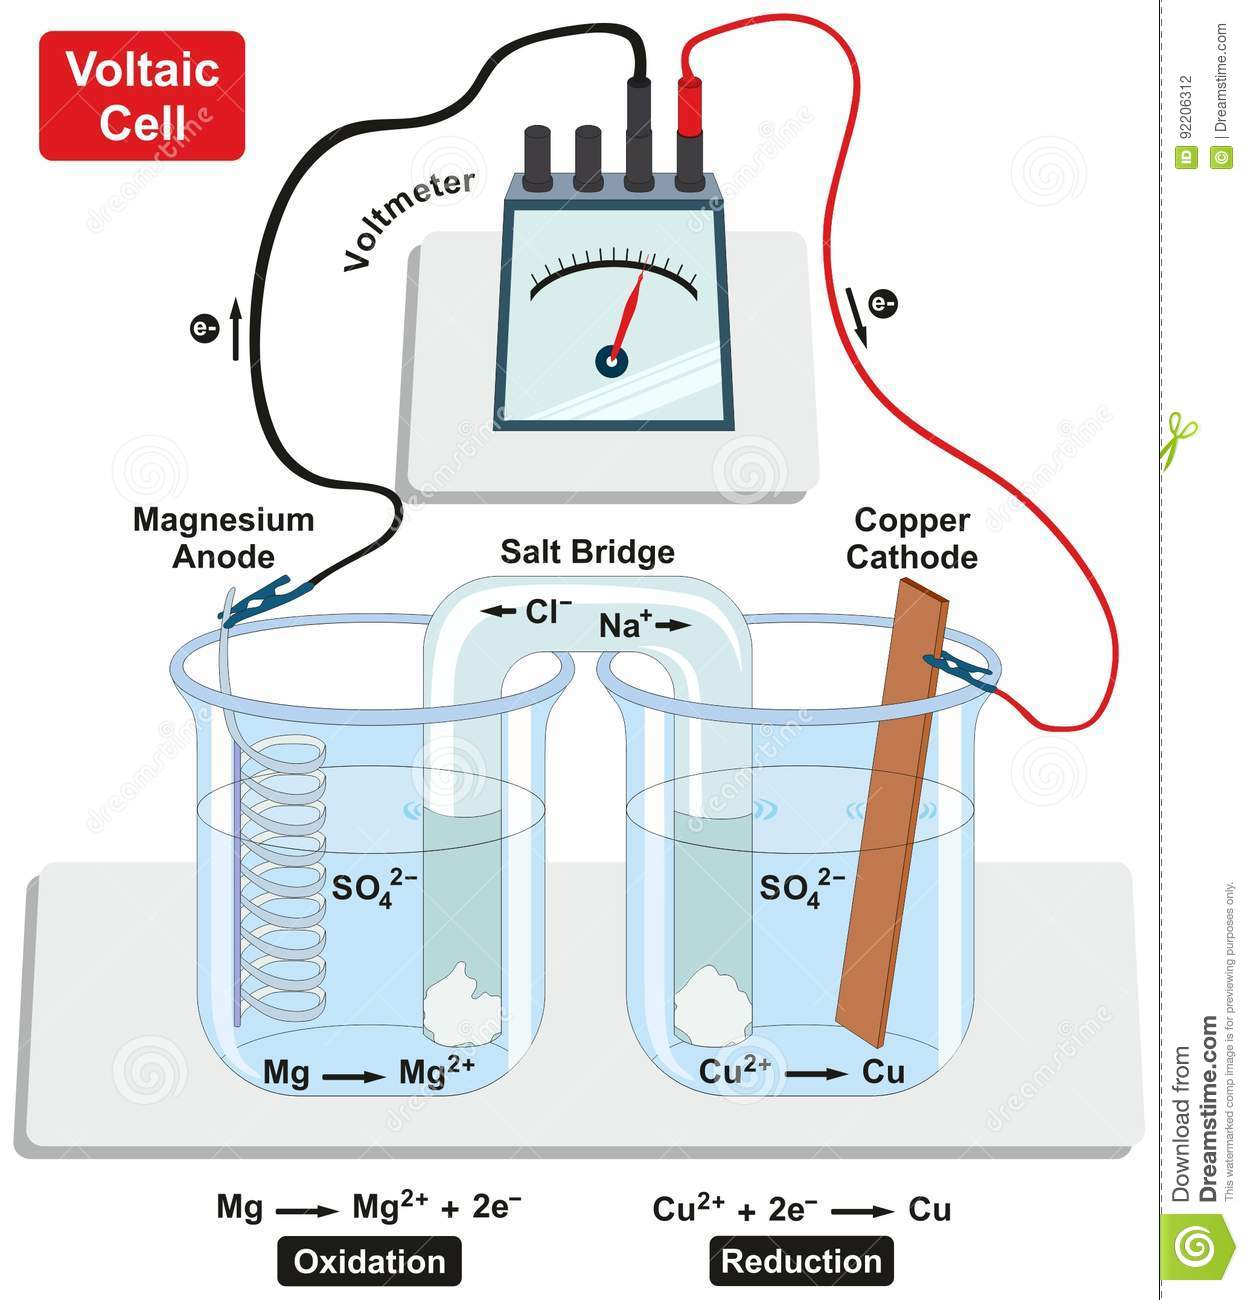 hight resolution of voltaic galvanic cell with copper cathode and magnesium anode salt bridge voltmeter and process of oxidation and reduction diagram for physics and chemistry